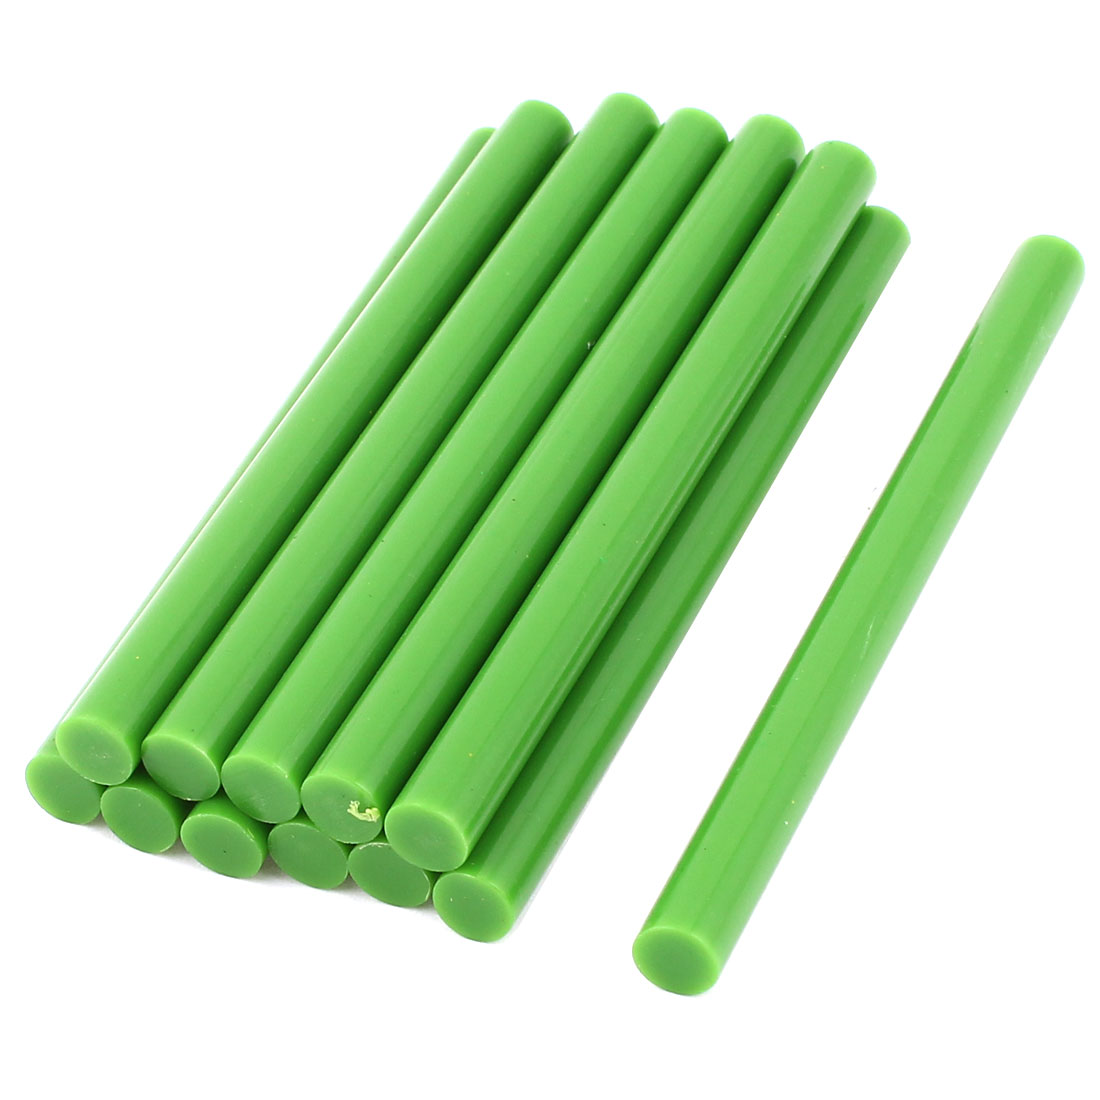 12 Pcs Green Hot Melt Glue Gun Adhesive Sticks 7mm x 100mm